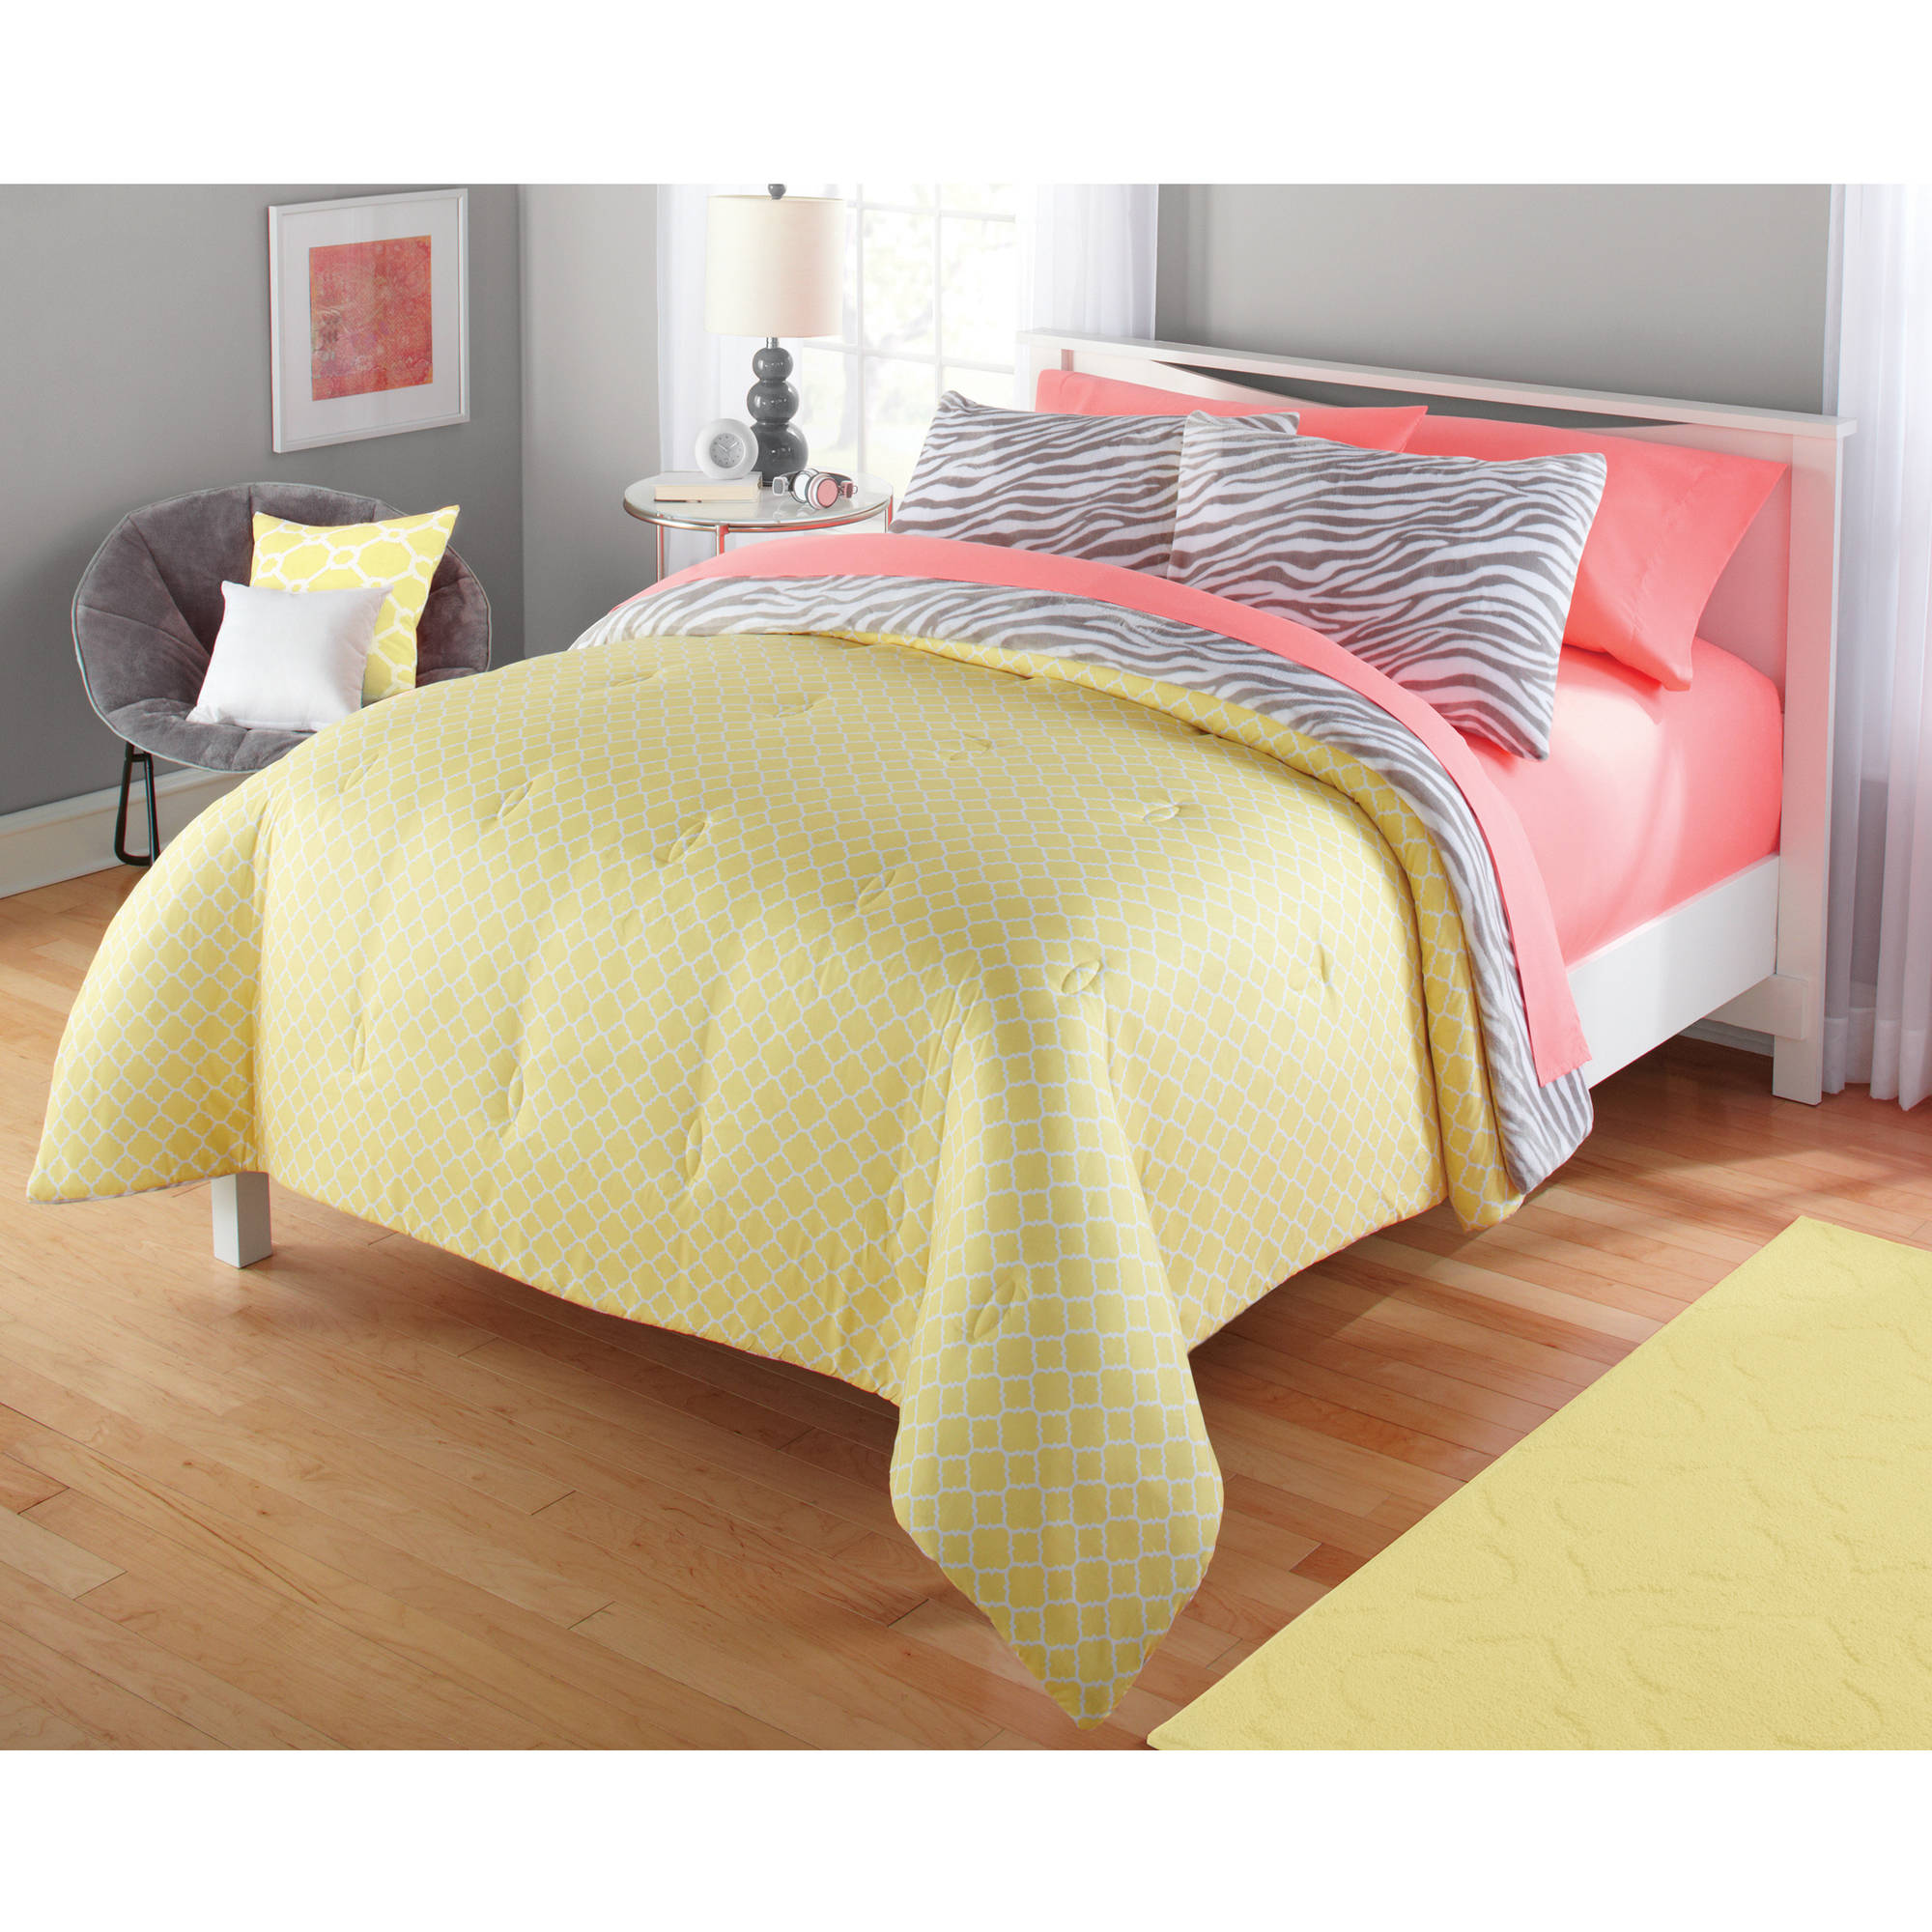 elise peach dp sets full queen set cheveron yellow grey skin bed fabric piece comforter teen blue design amazon intelligent bedding com